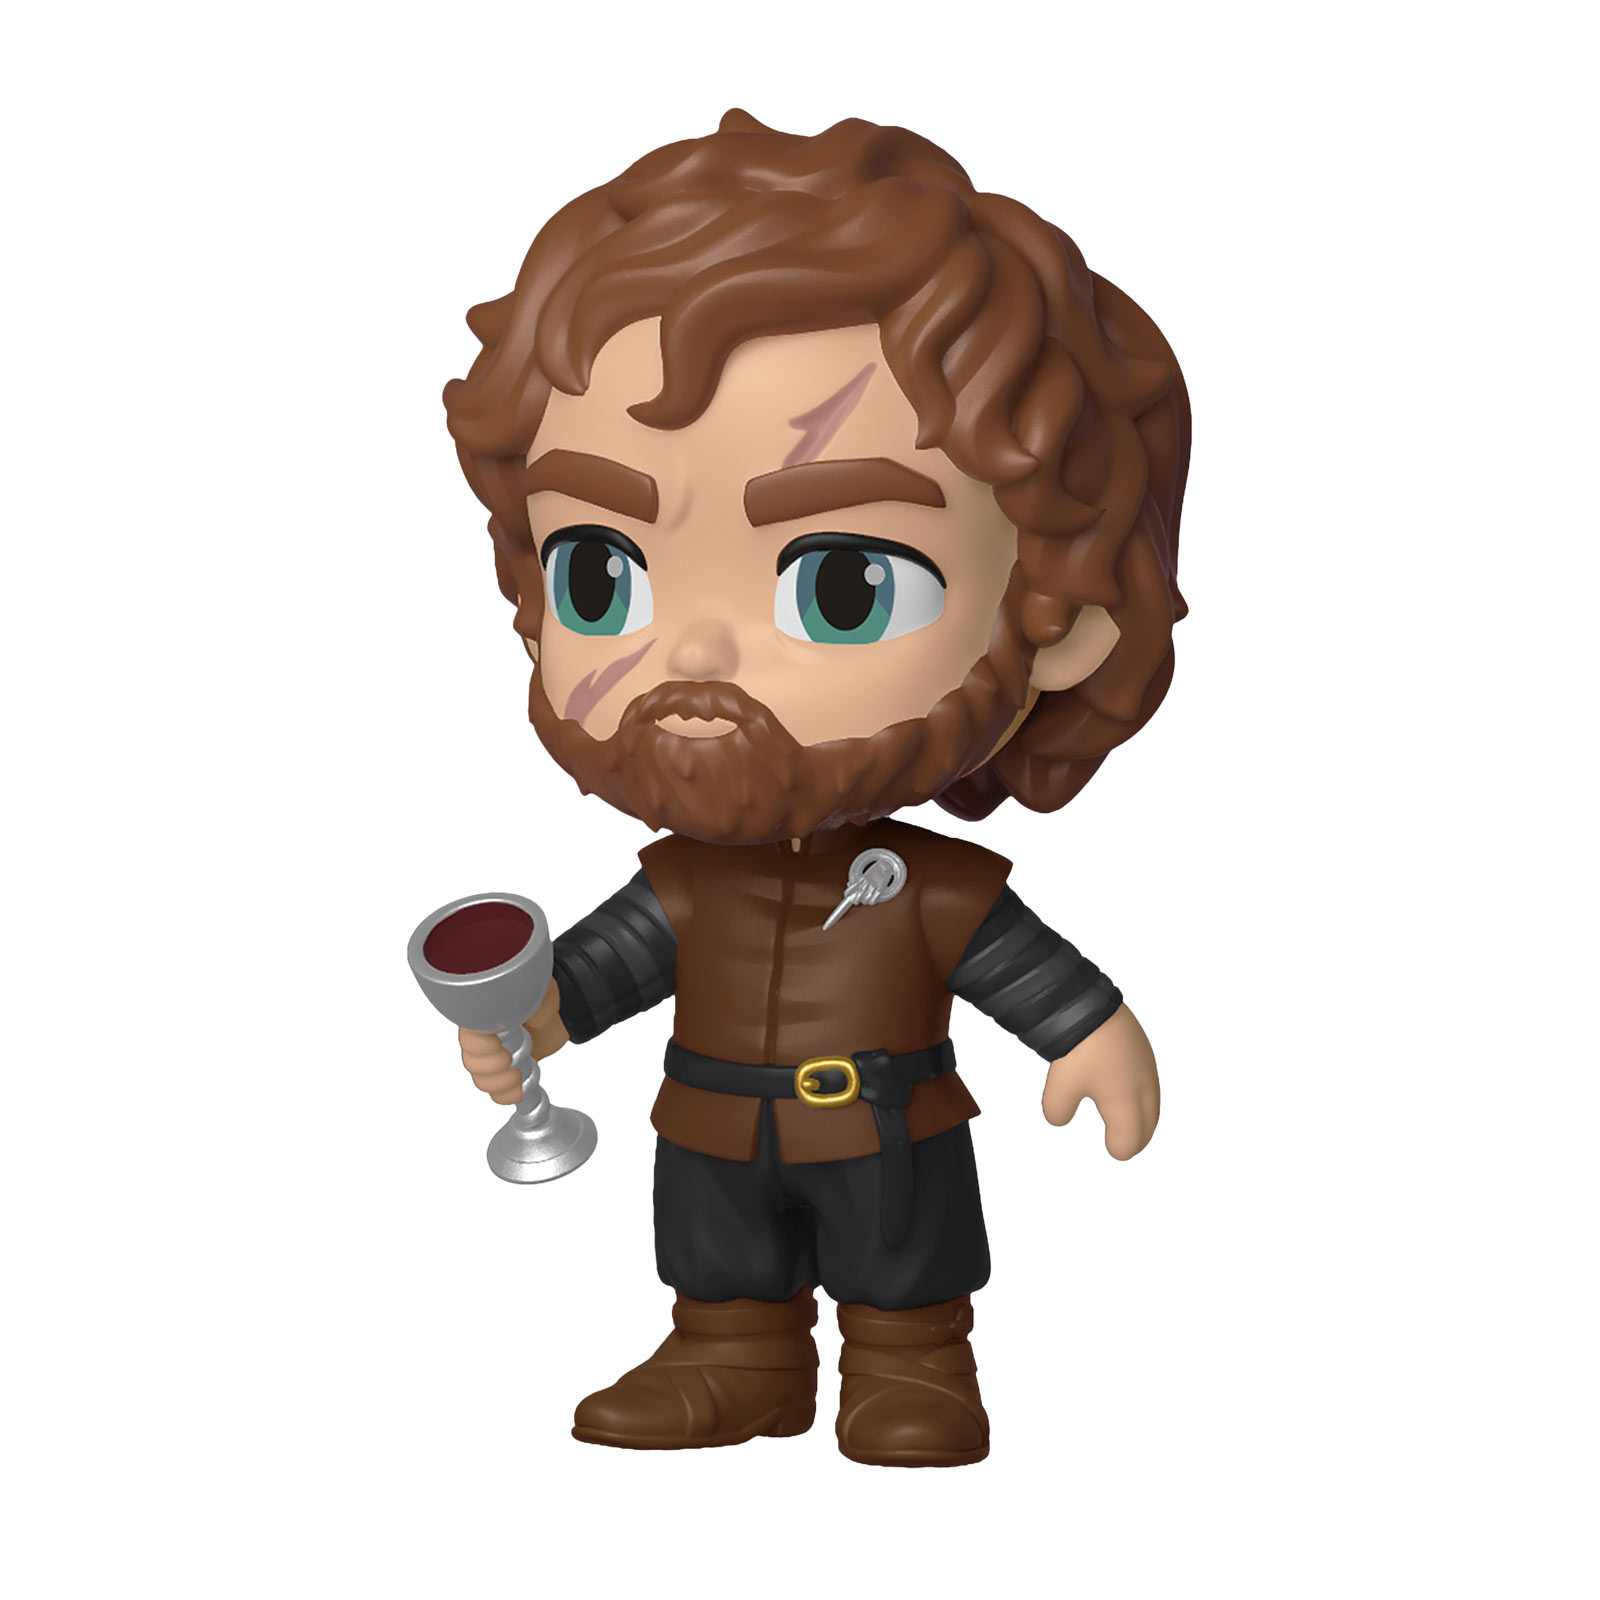 Game of Thrones - Tyrion Lannister Funko Five Star Figur